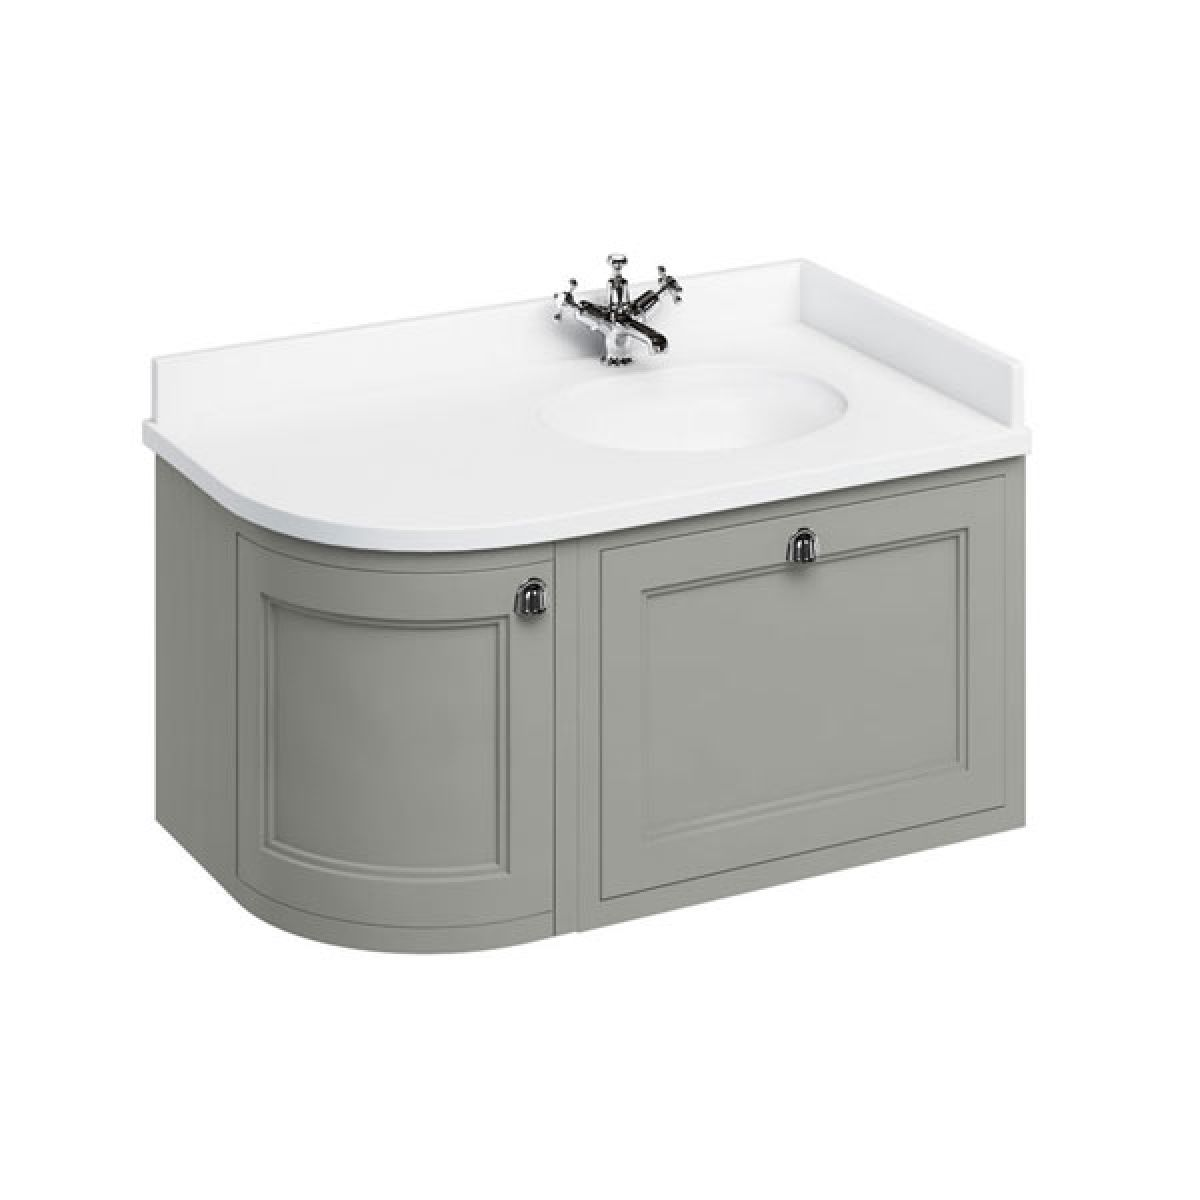 Burlington Dark Olive Wall Hung Curved Right Hand Vanity Unit 1000mm (White)